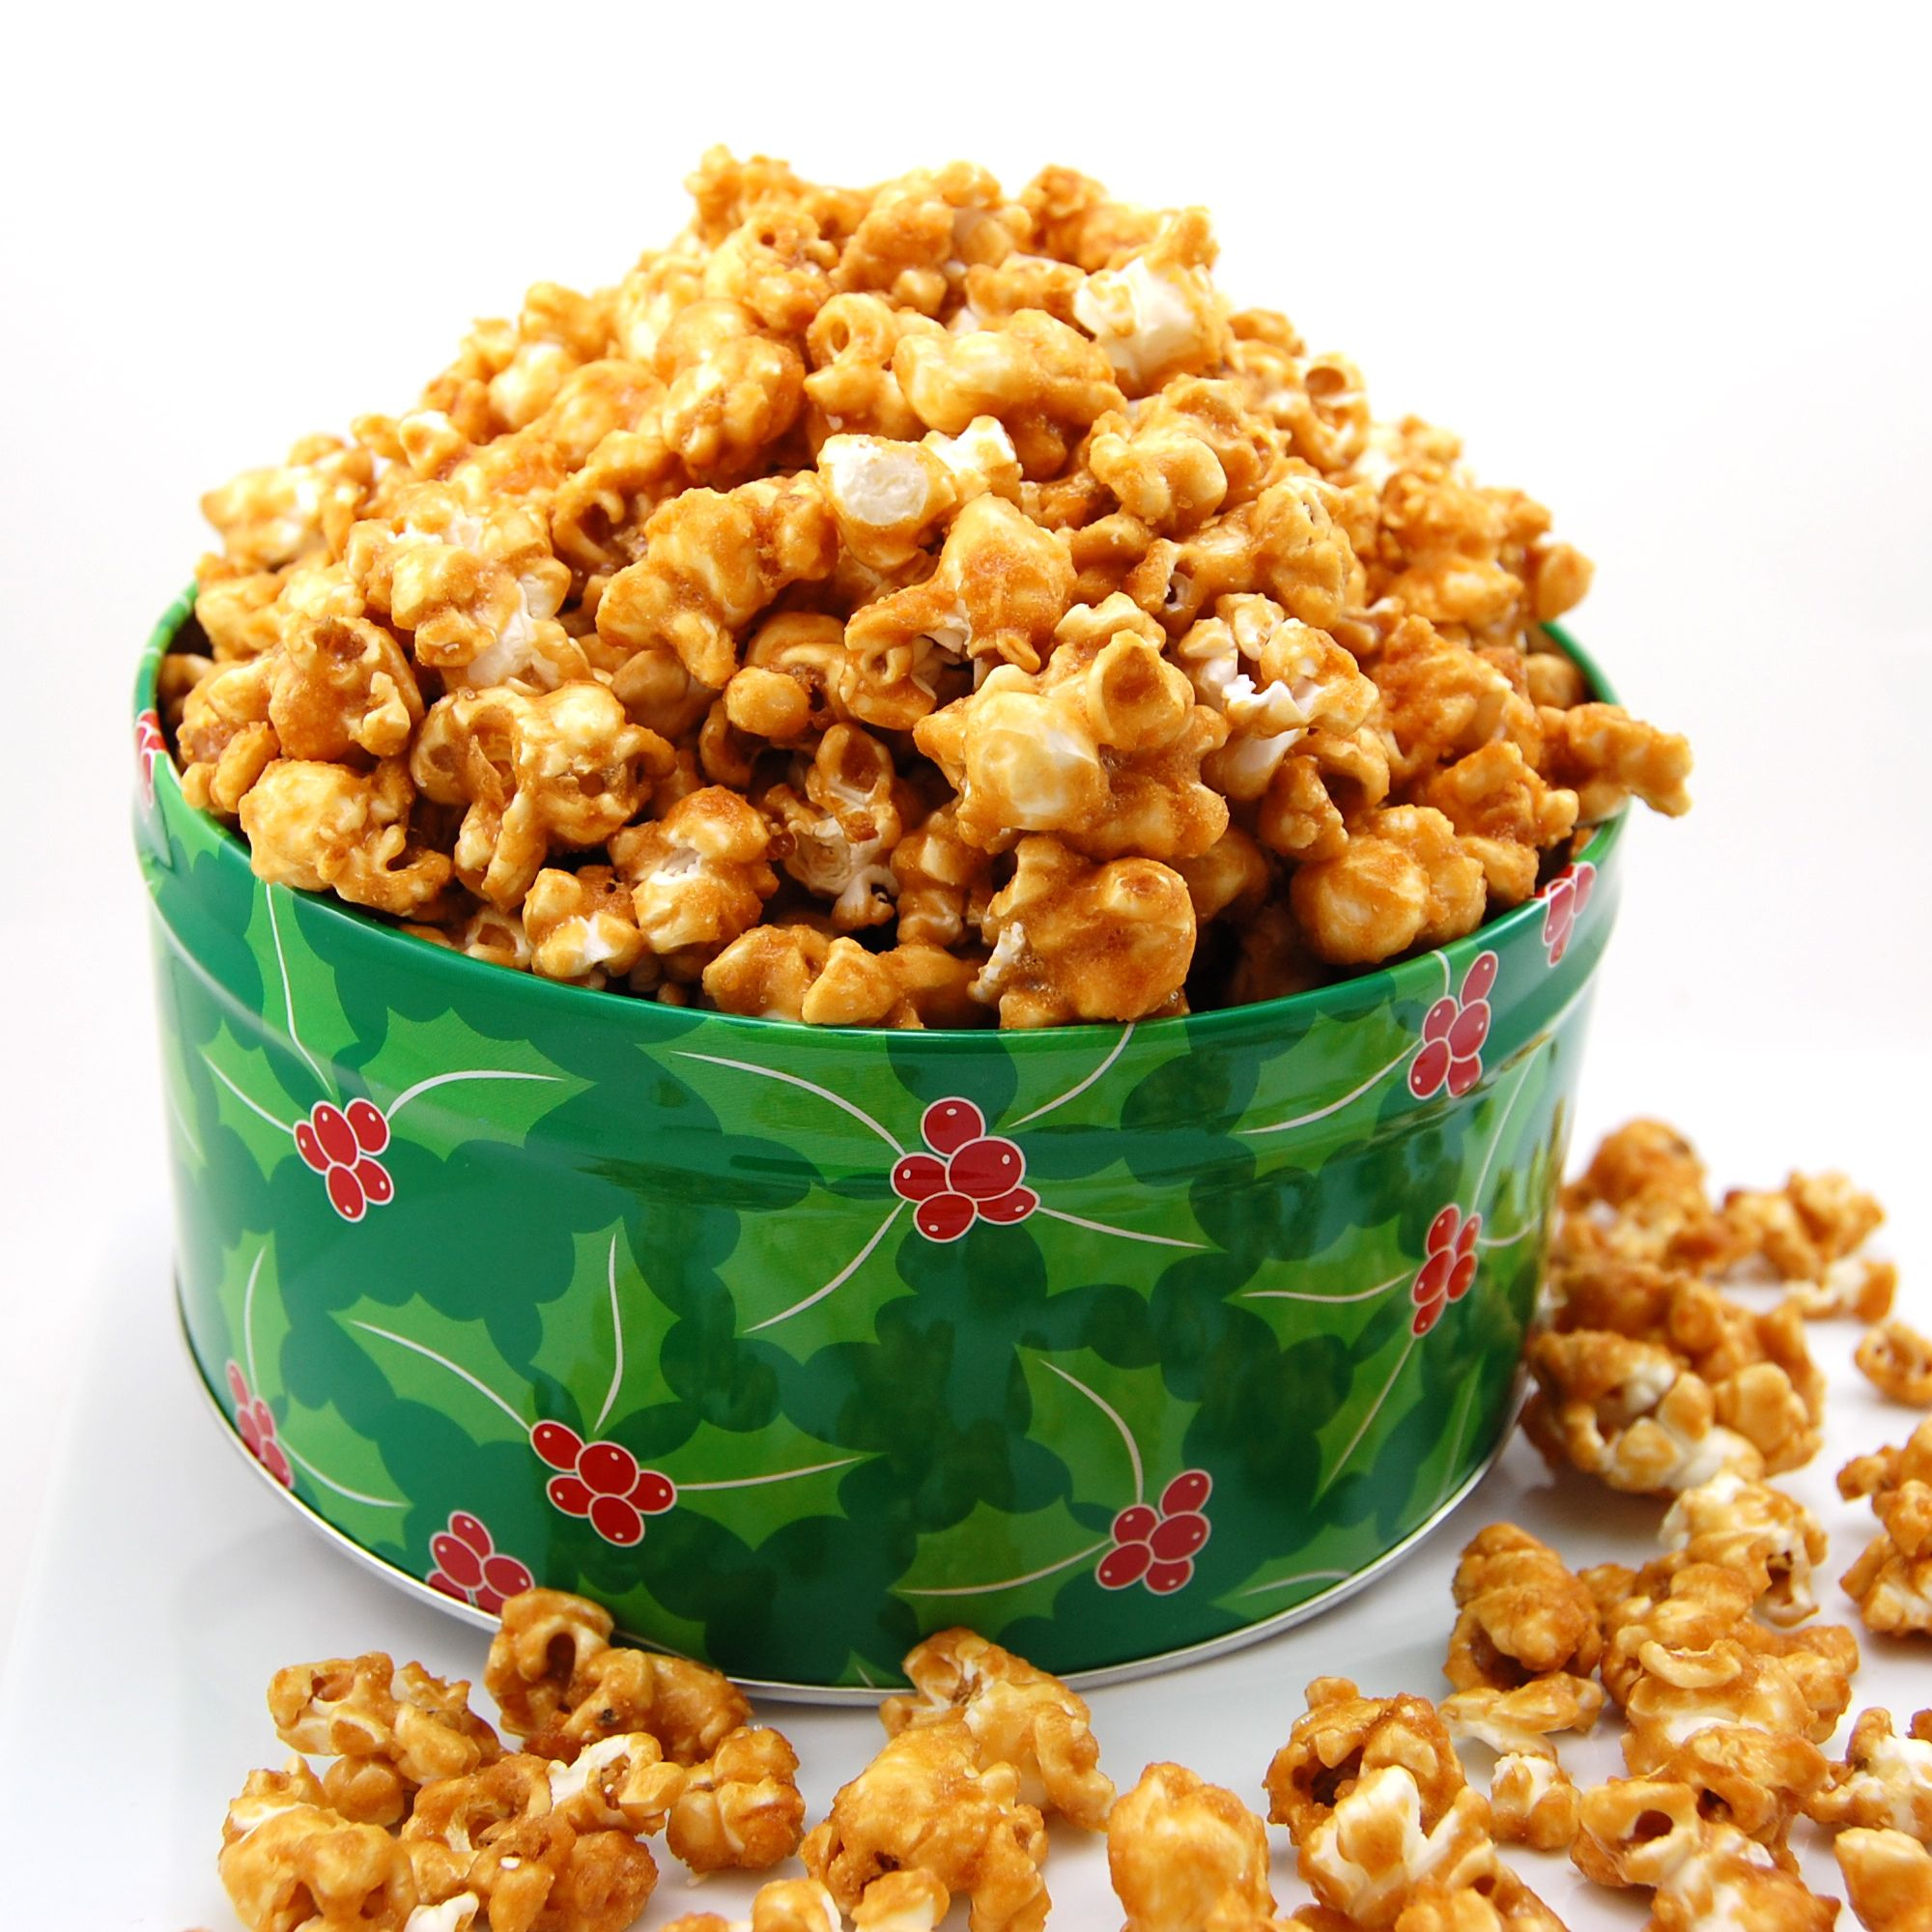 Use this amazing recipe and enjoy your own homemade caramel popcorn.